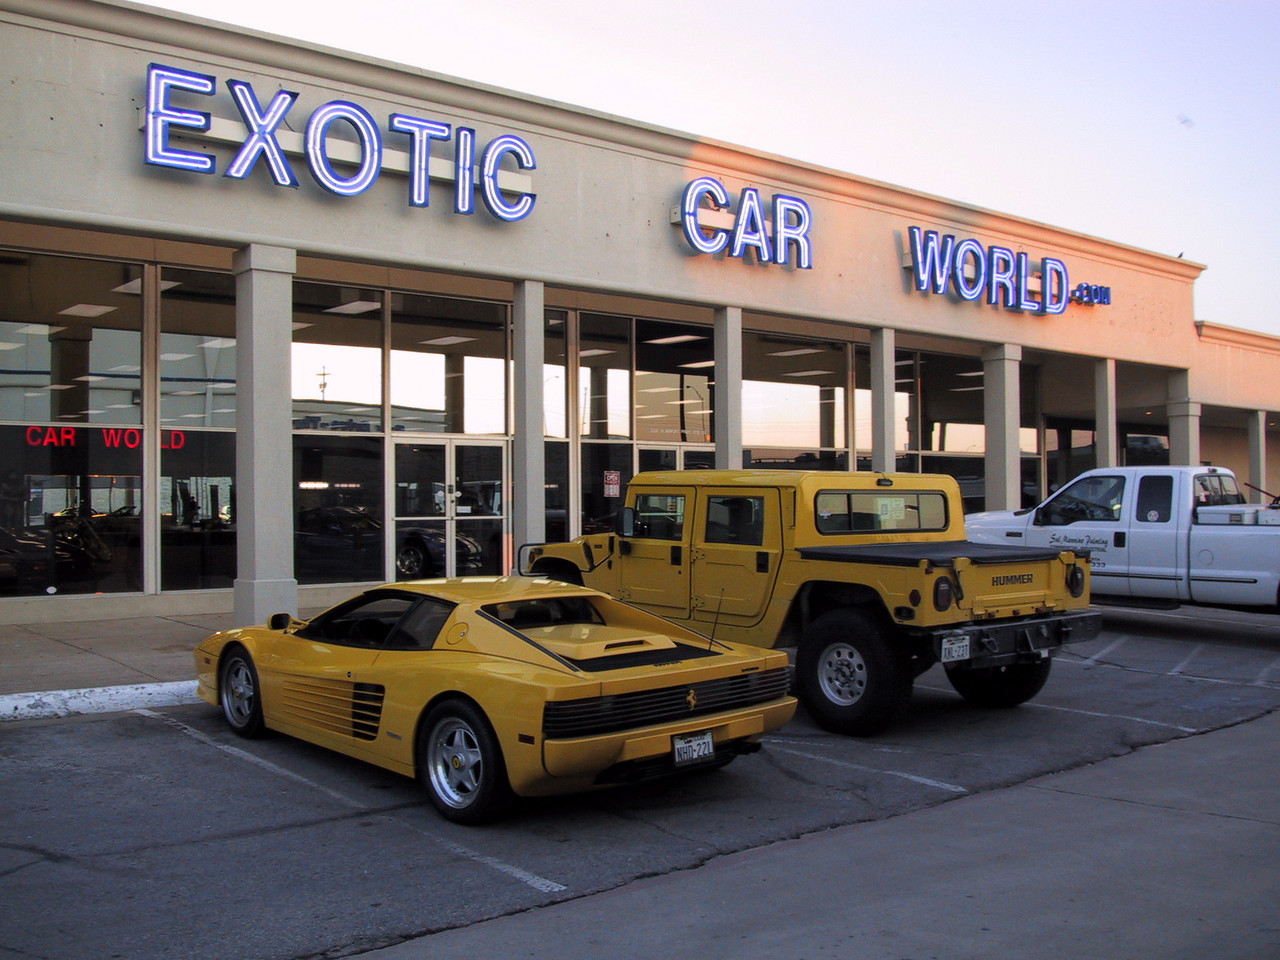 Exotic Car World and the last shot of the yellow twins together. :)